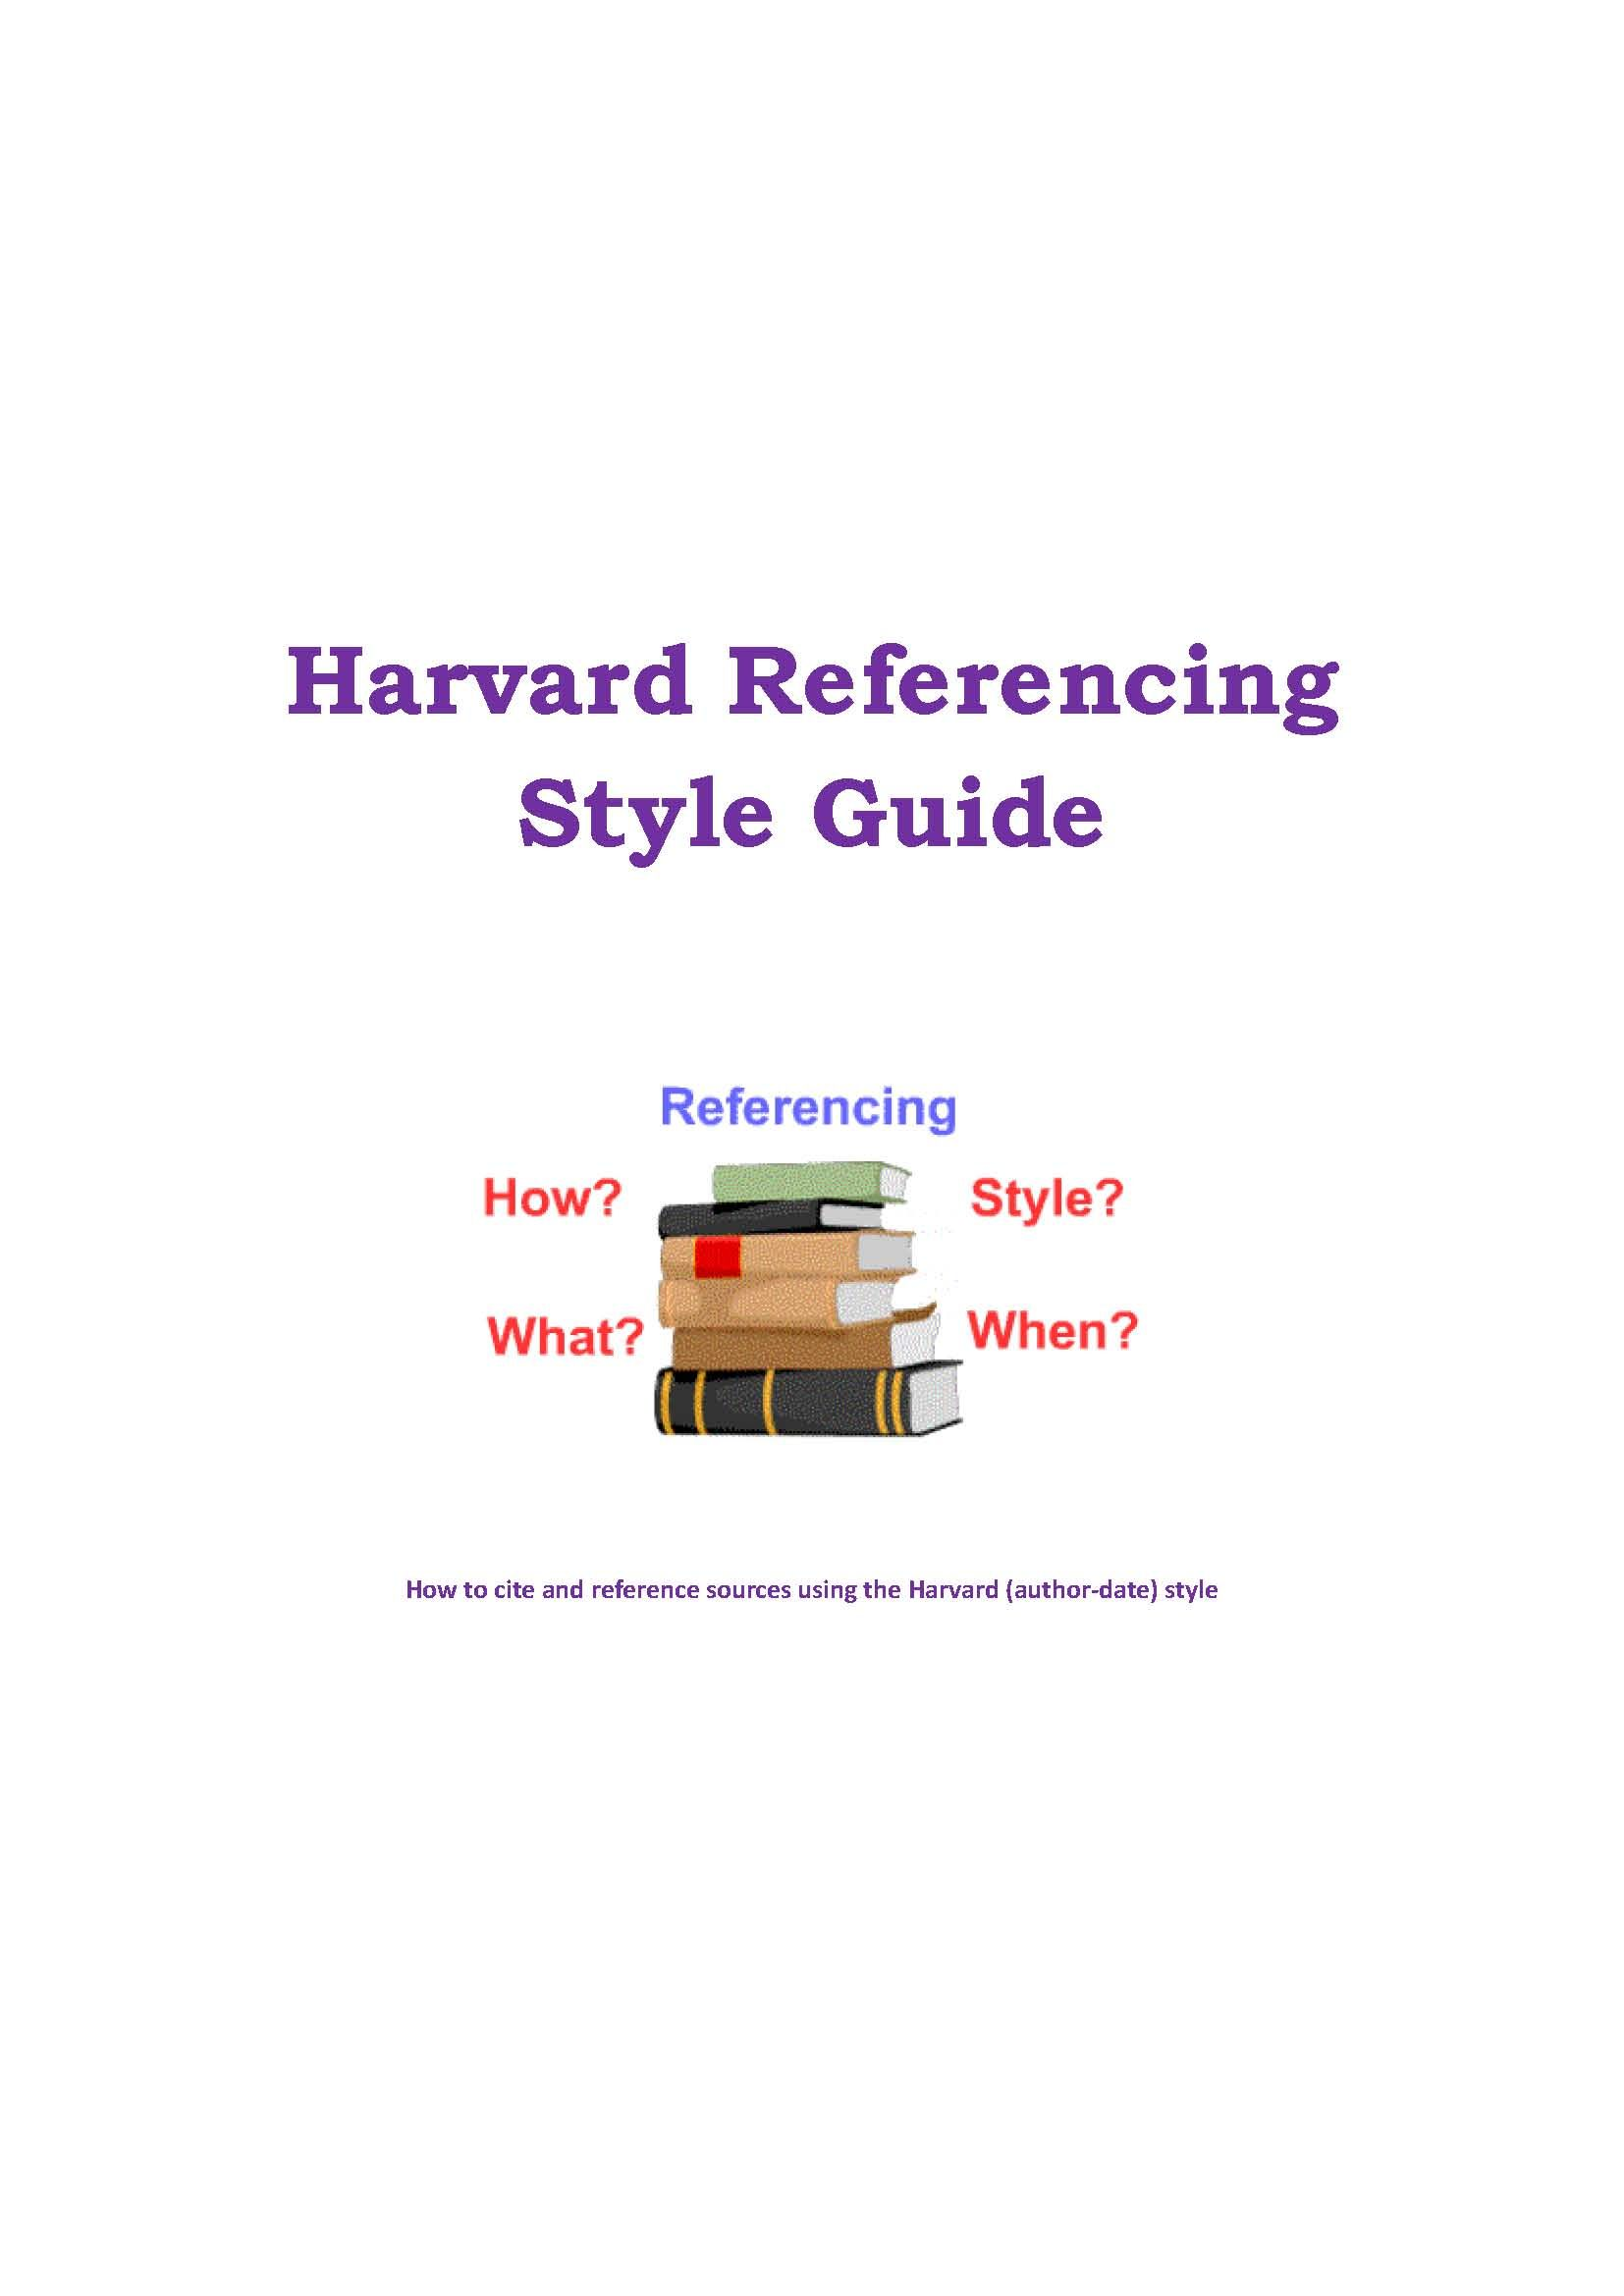 Harvard Referencing Style Guide Social Thinking How To Cite Book In Text